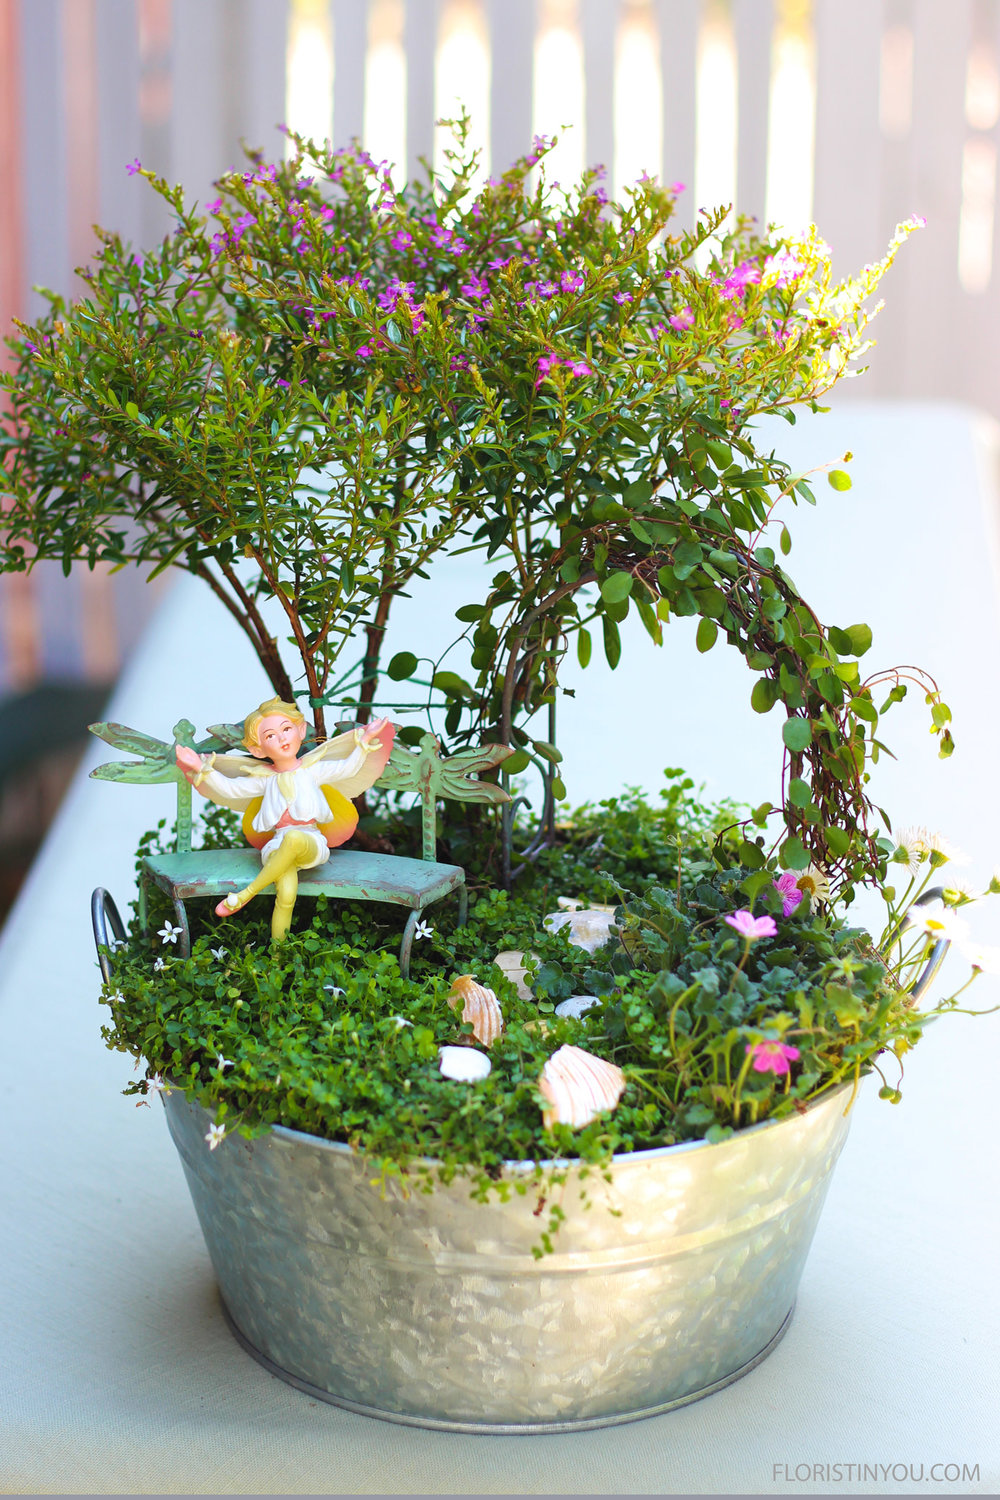 How to Make a Fairie Garden